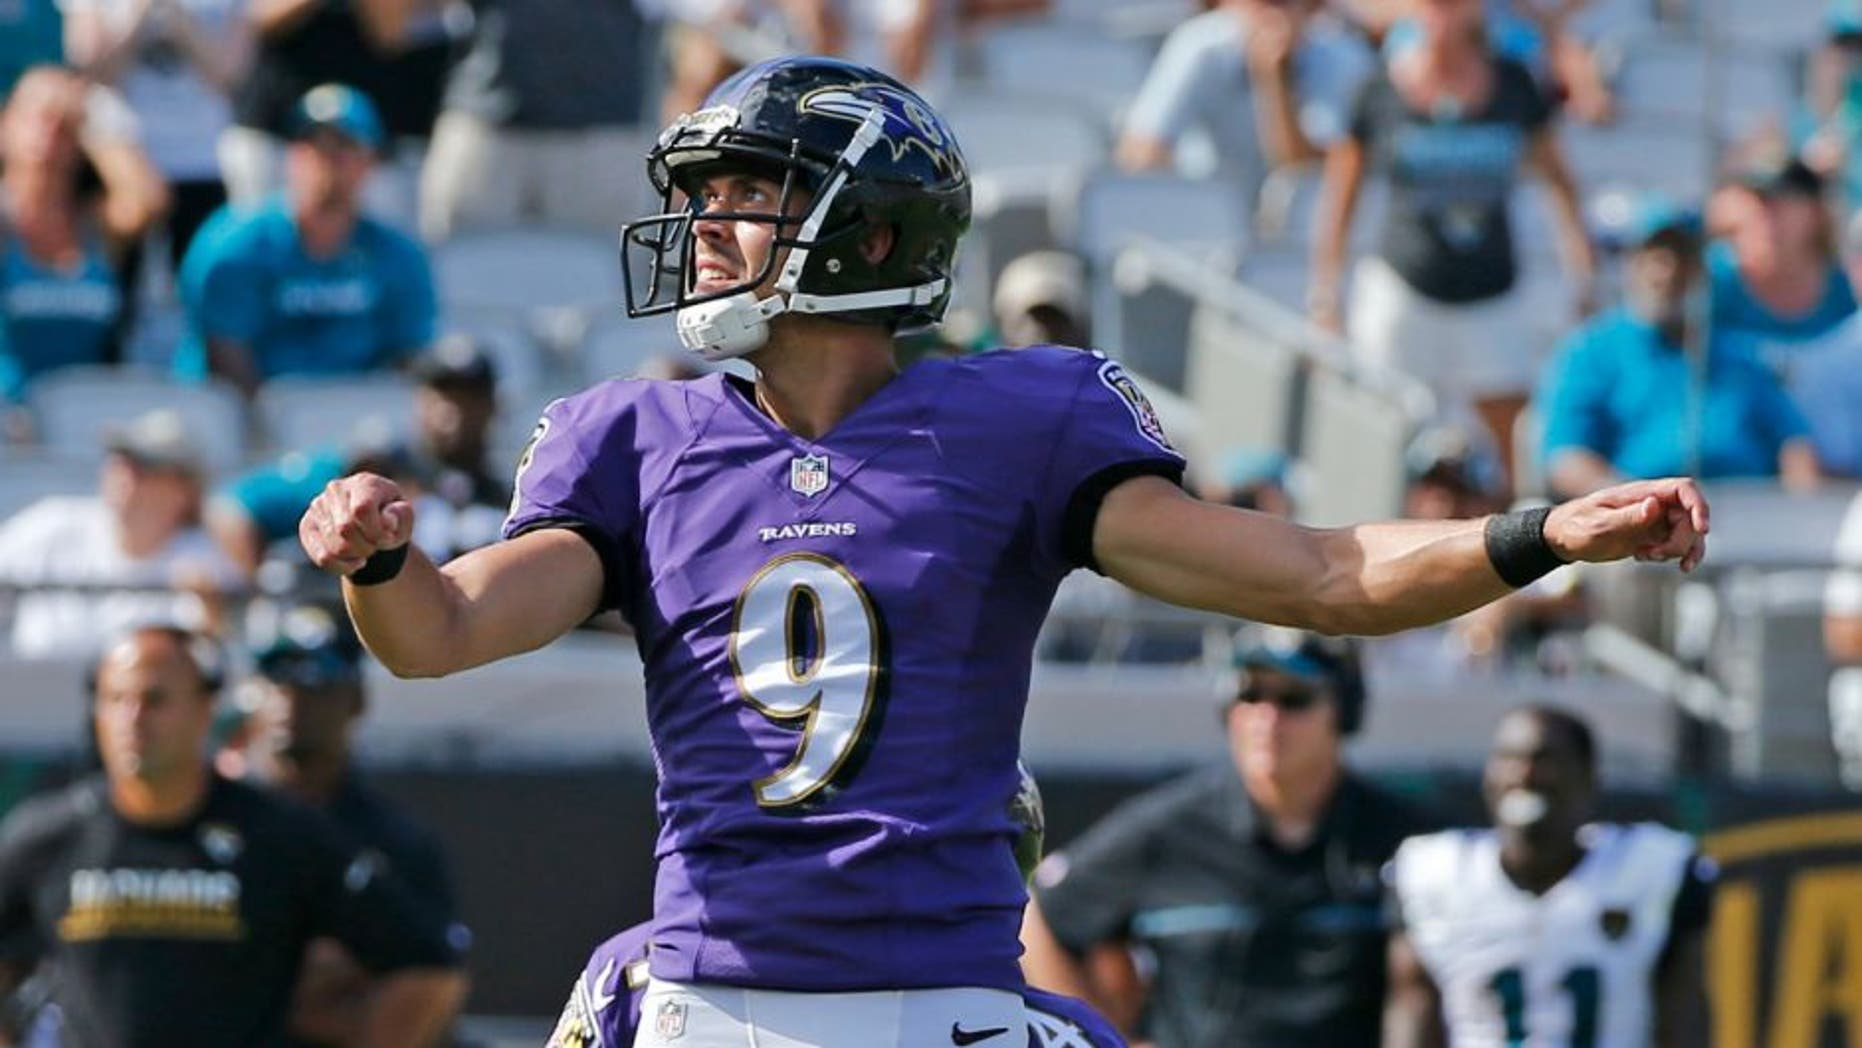 JACKSONVILLE, FL - SEPTEMBER 25: Justin Tucker #9 of the Baltimore Ravens looks up after kicking the winning field goal in the fourth quarter against the Jacksonville Jaguars during an NFL game on September 25, 2016 at EverBank Field in Jacksonville, Florida. The Ravens defeated the Jaguars 19-17. (Photo by Joel Auerbach/Getty Images) *** Local Caption *** Justin Tucker